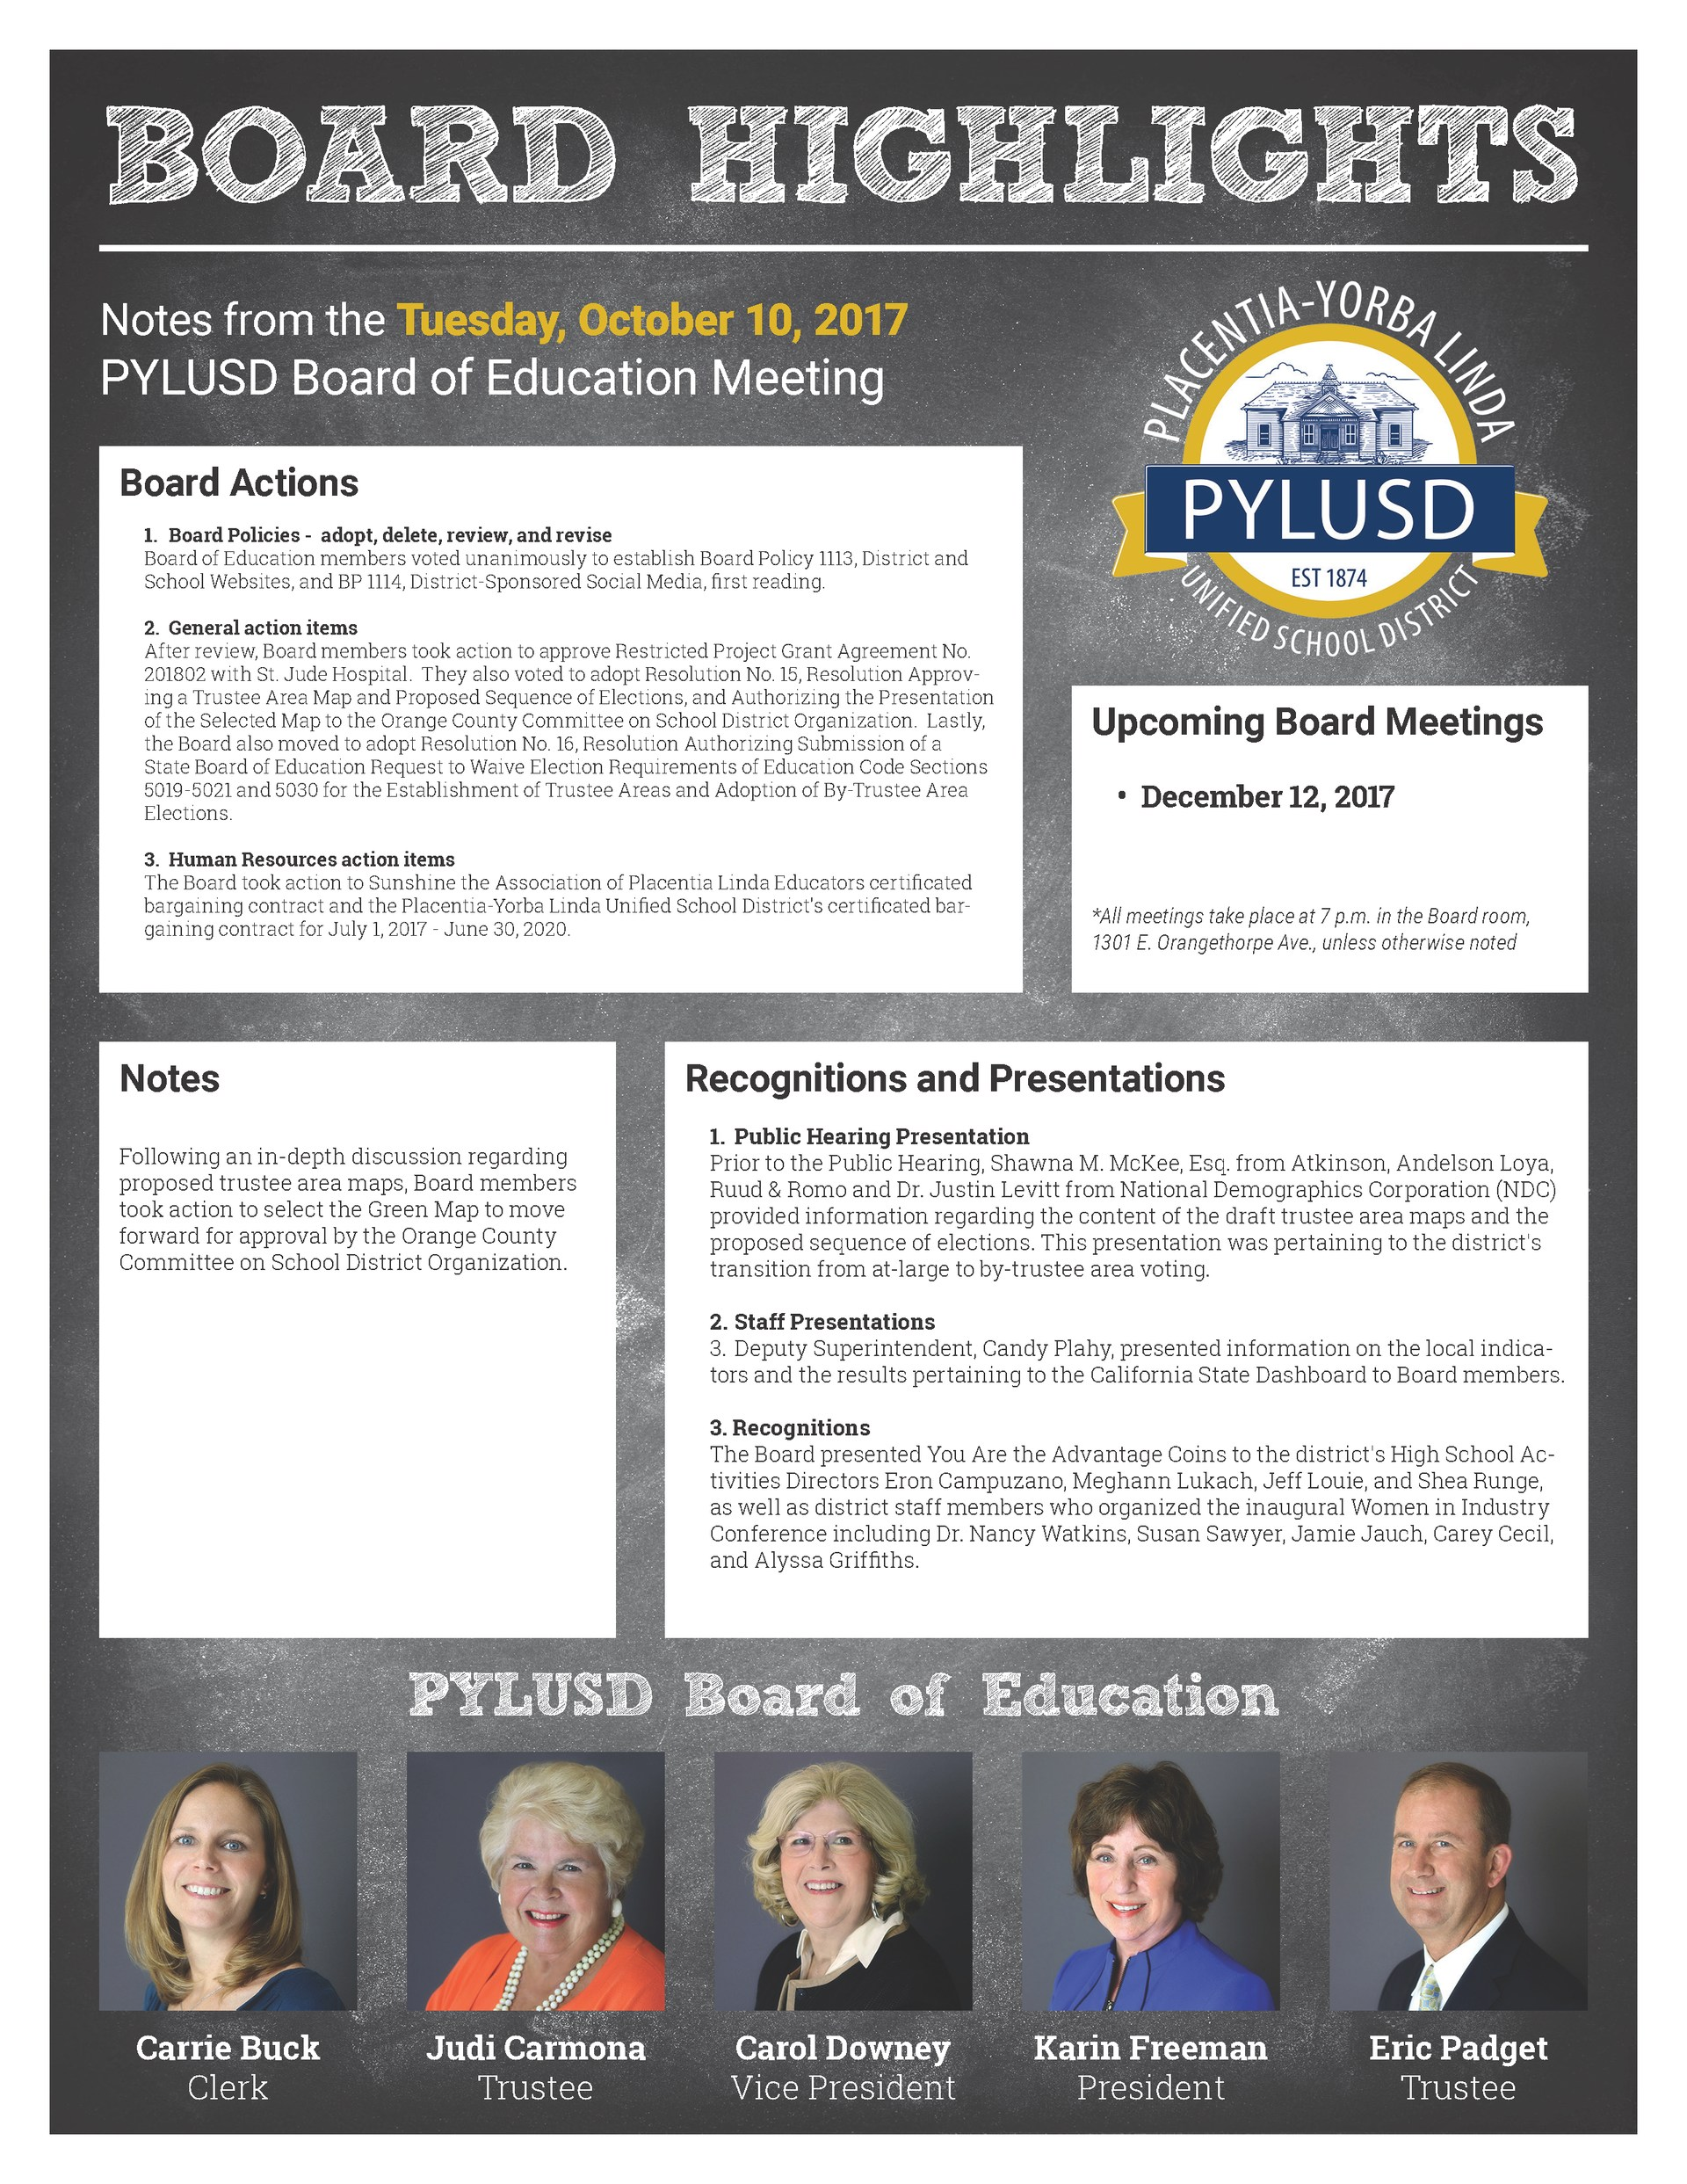 Board highlights from the November 7 meeting.